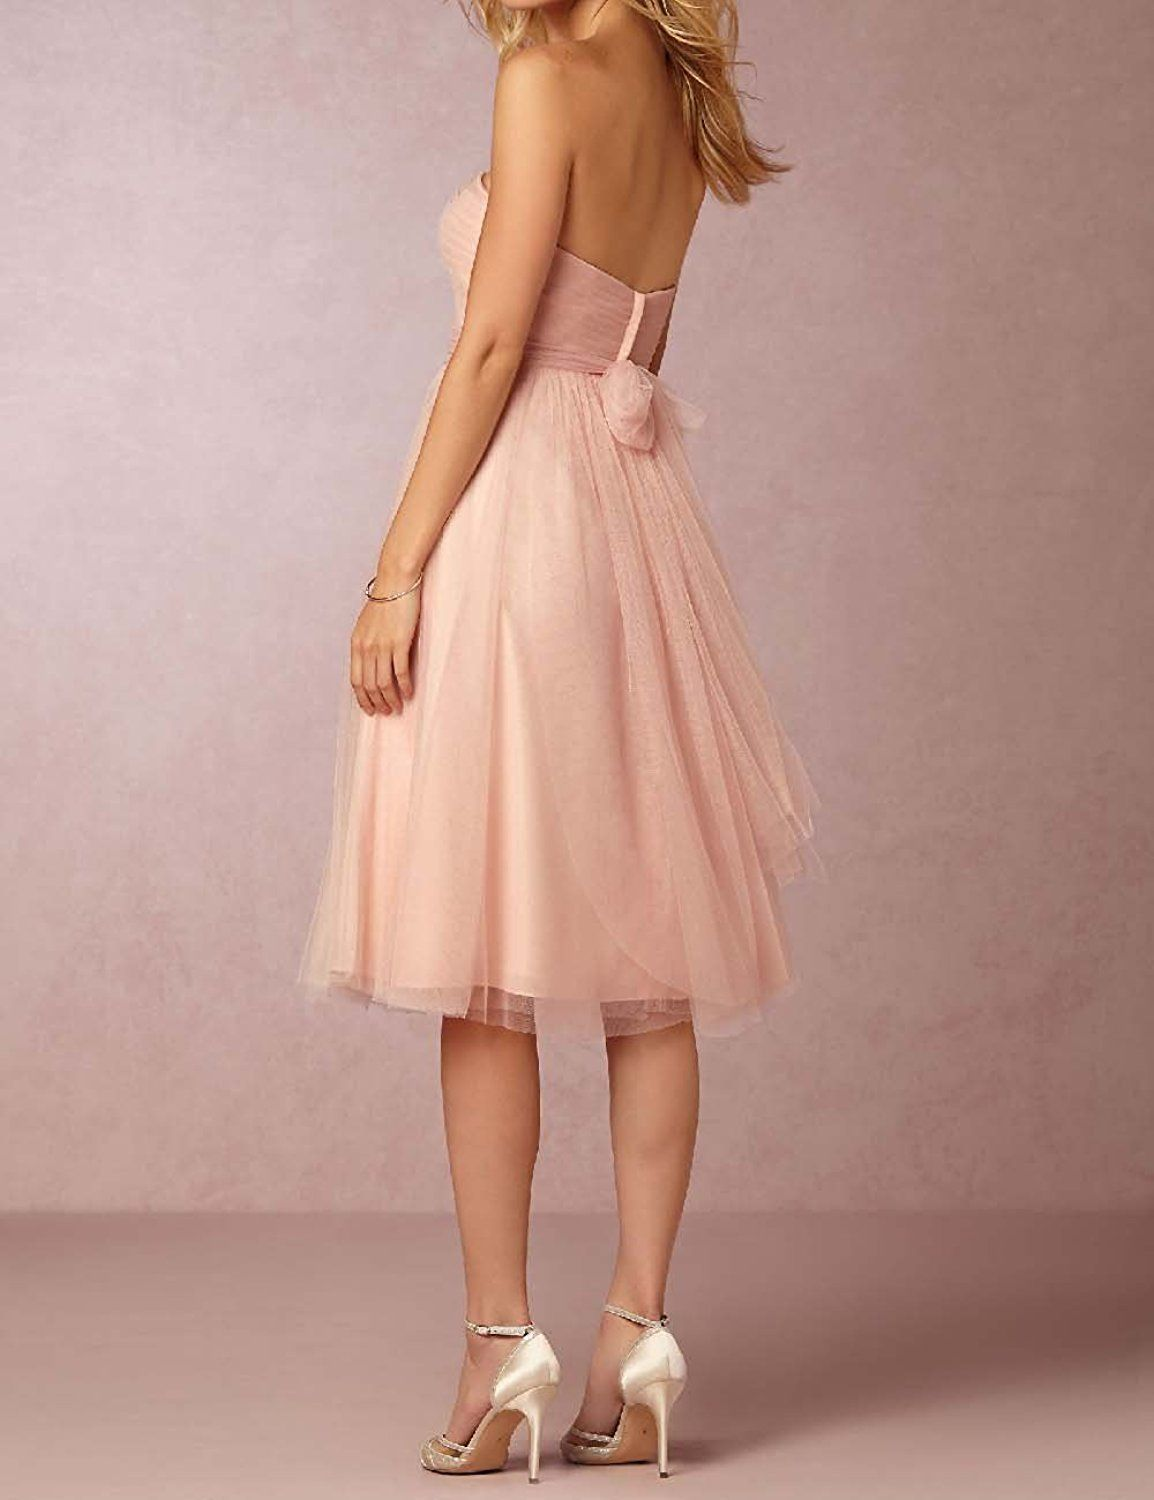 878454ad8eb OYISHA Women s Tulle Sweetheart Short Bridesmaid Blush Cocktail Dresses  PR45 at Amazon Women s Clothing store